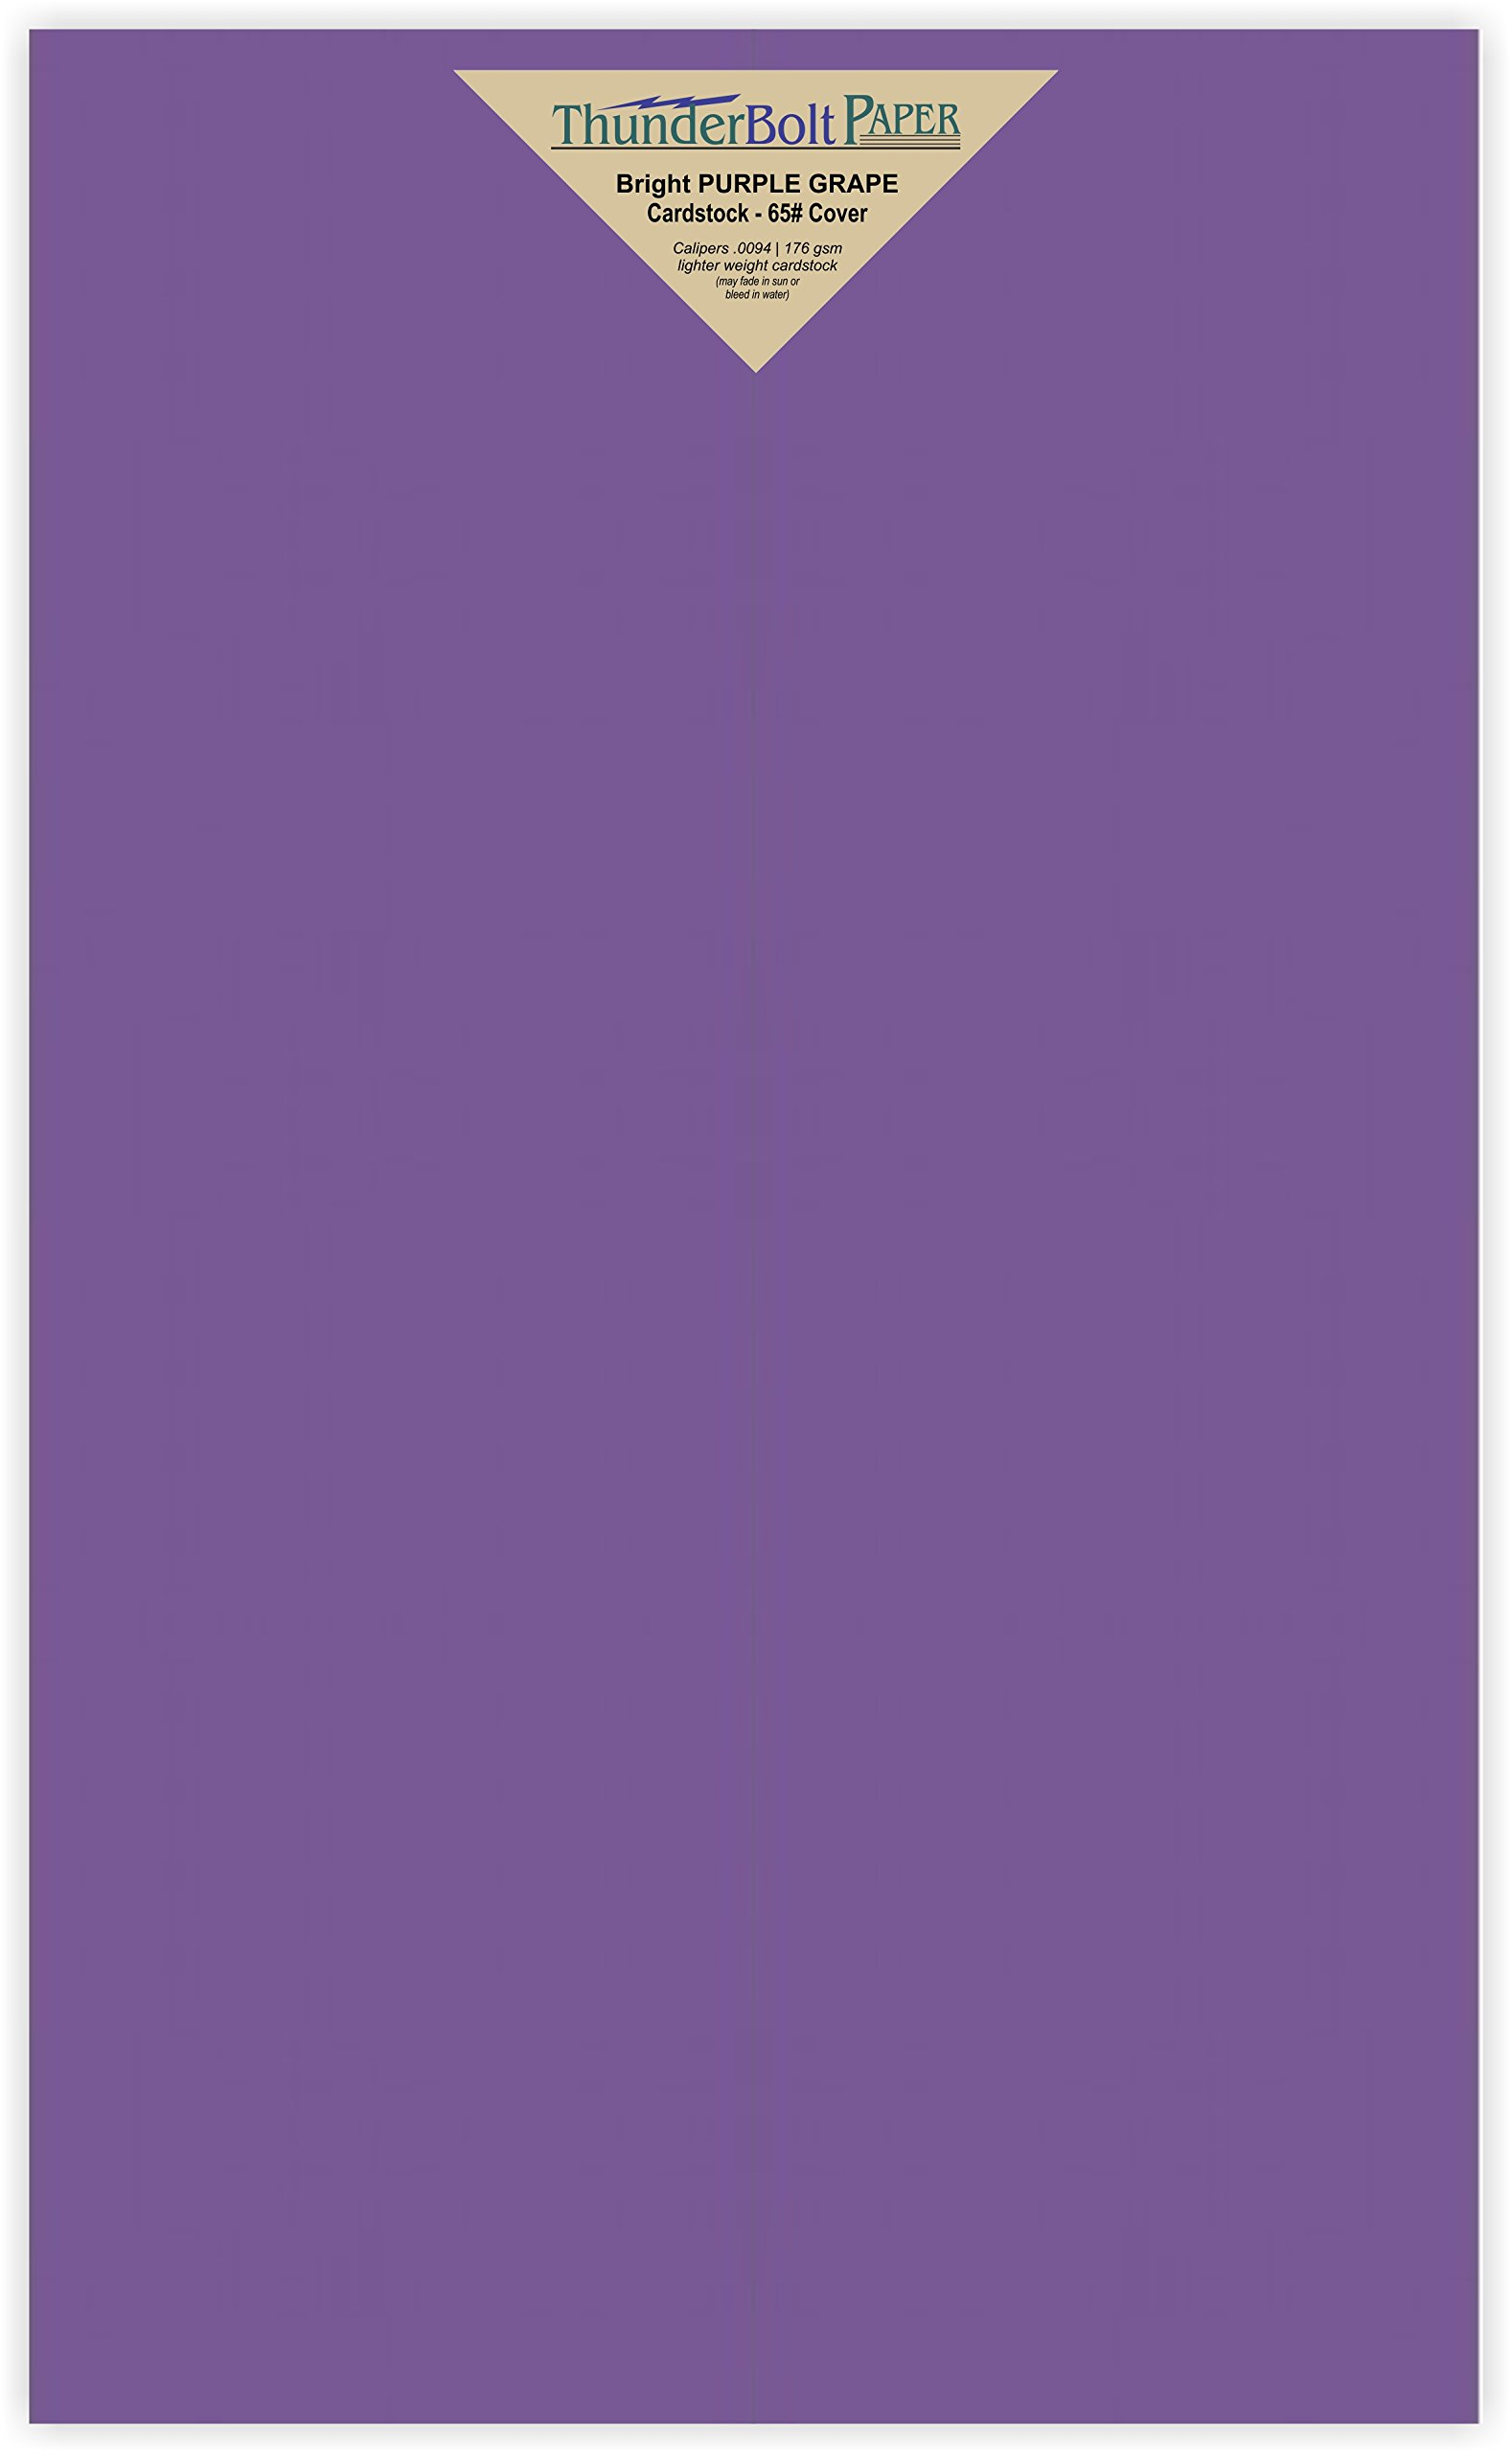 100 Bright Purple Grape 65# Cardstock Paper 8.5'' X 14'' (8.5X14 Inches) Legal|Menu Size - 65Cover/45Bond Light Weight Card Stock - Bright Printable Smooth Paper Surface